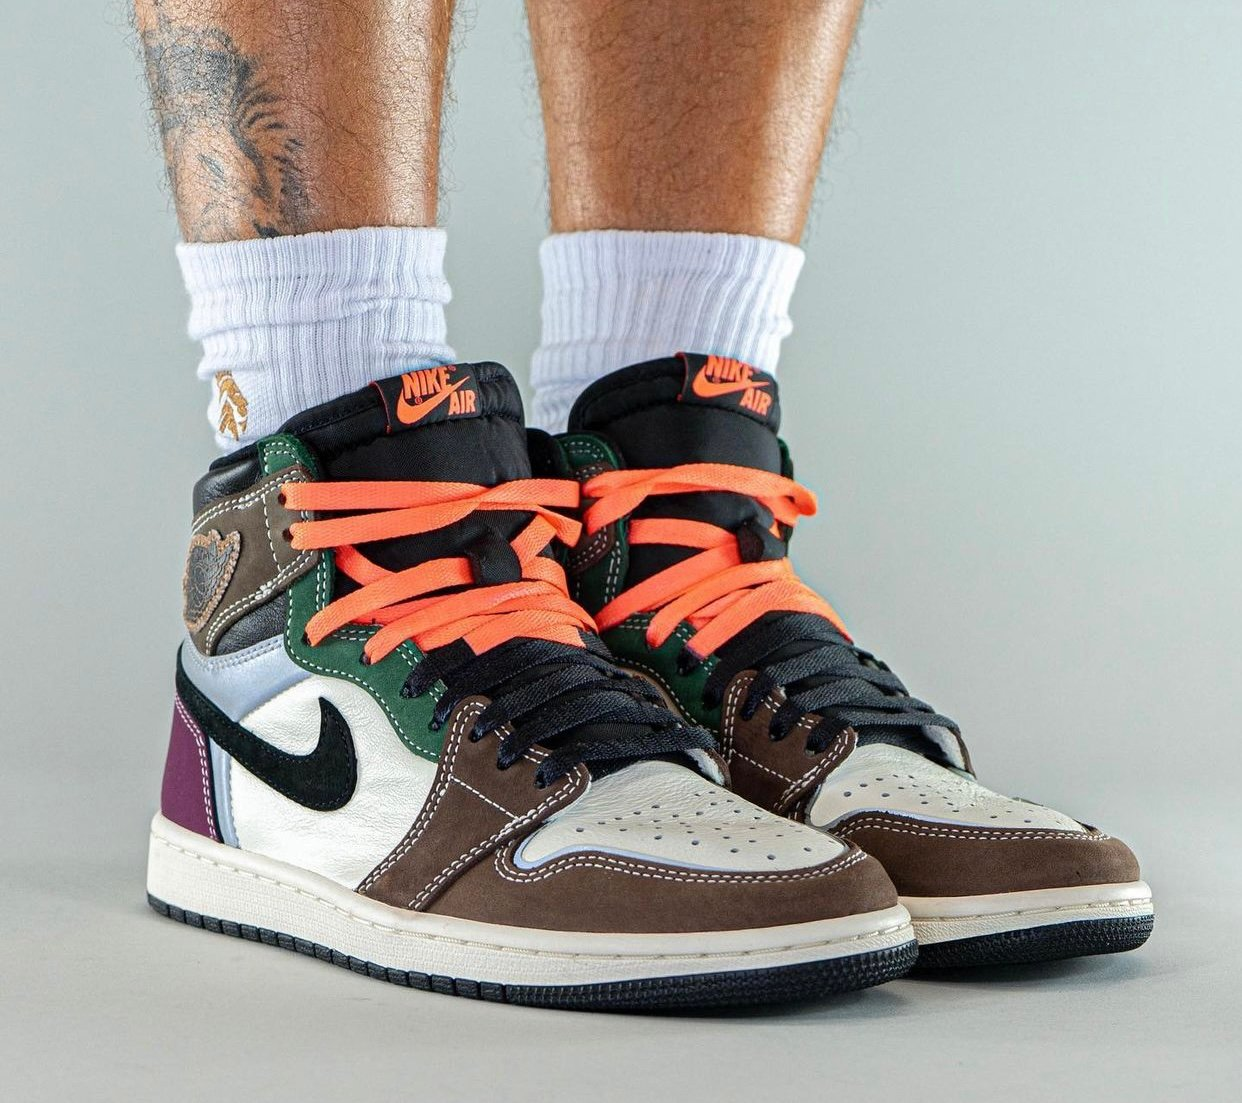 stefan janoski camo nike buy back jeans shoes Hand Crafted DH3097-001 On-Feet